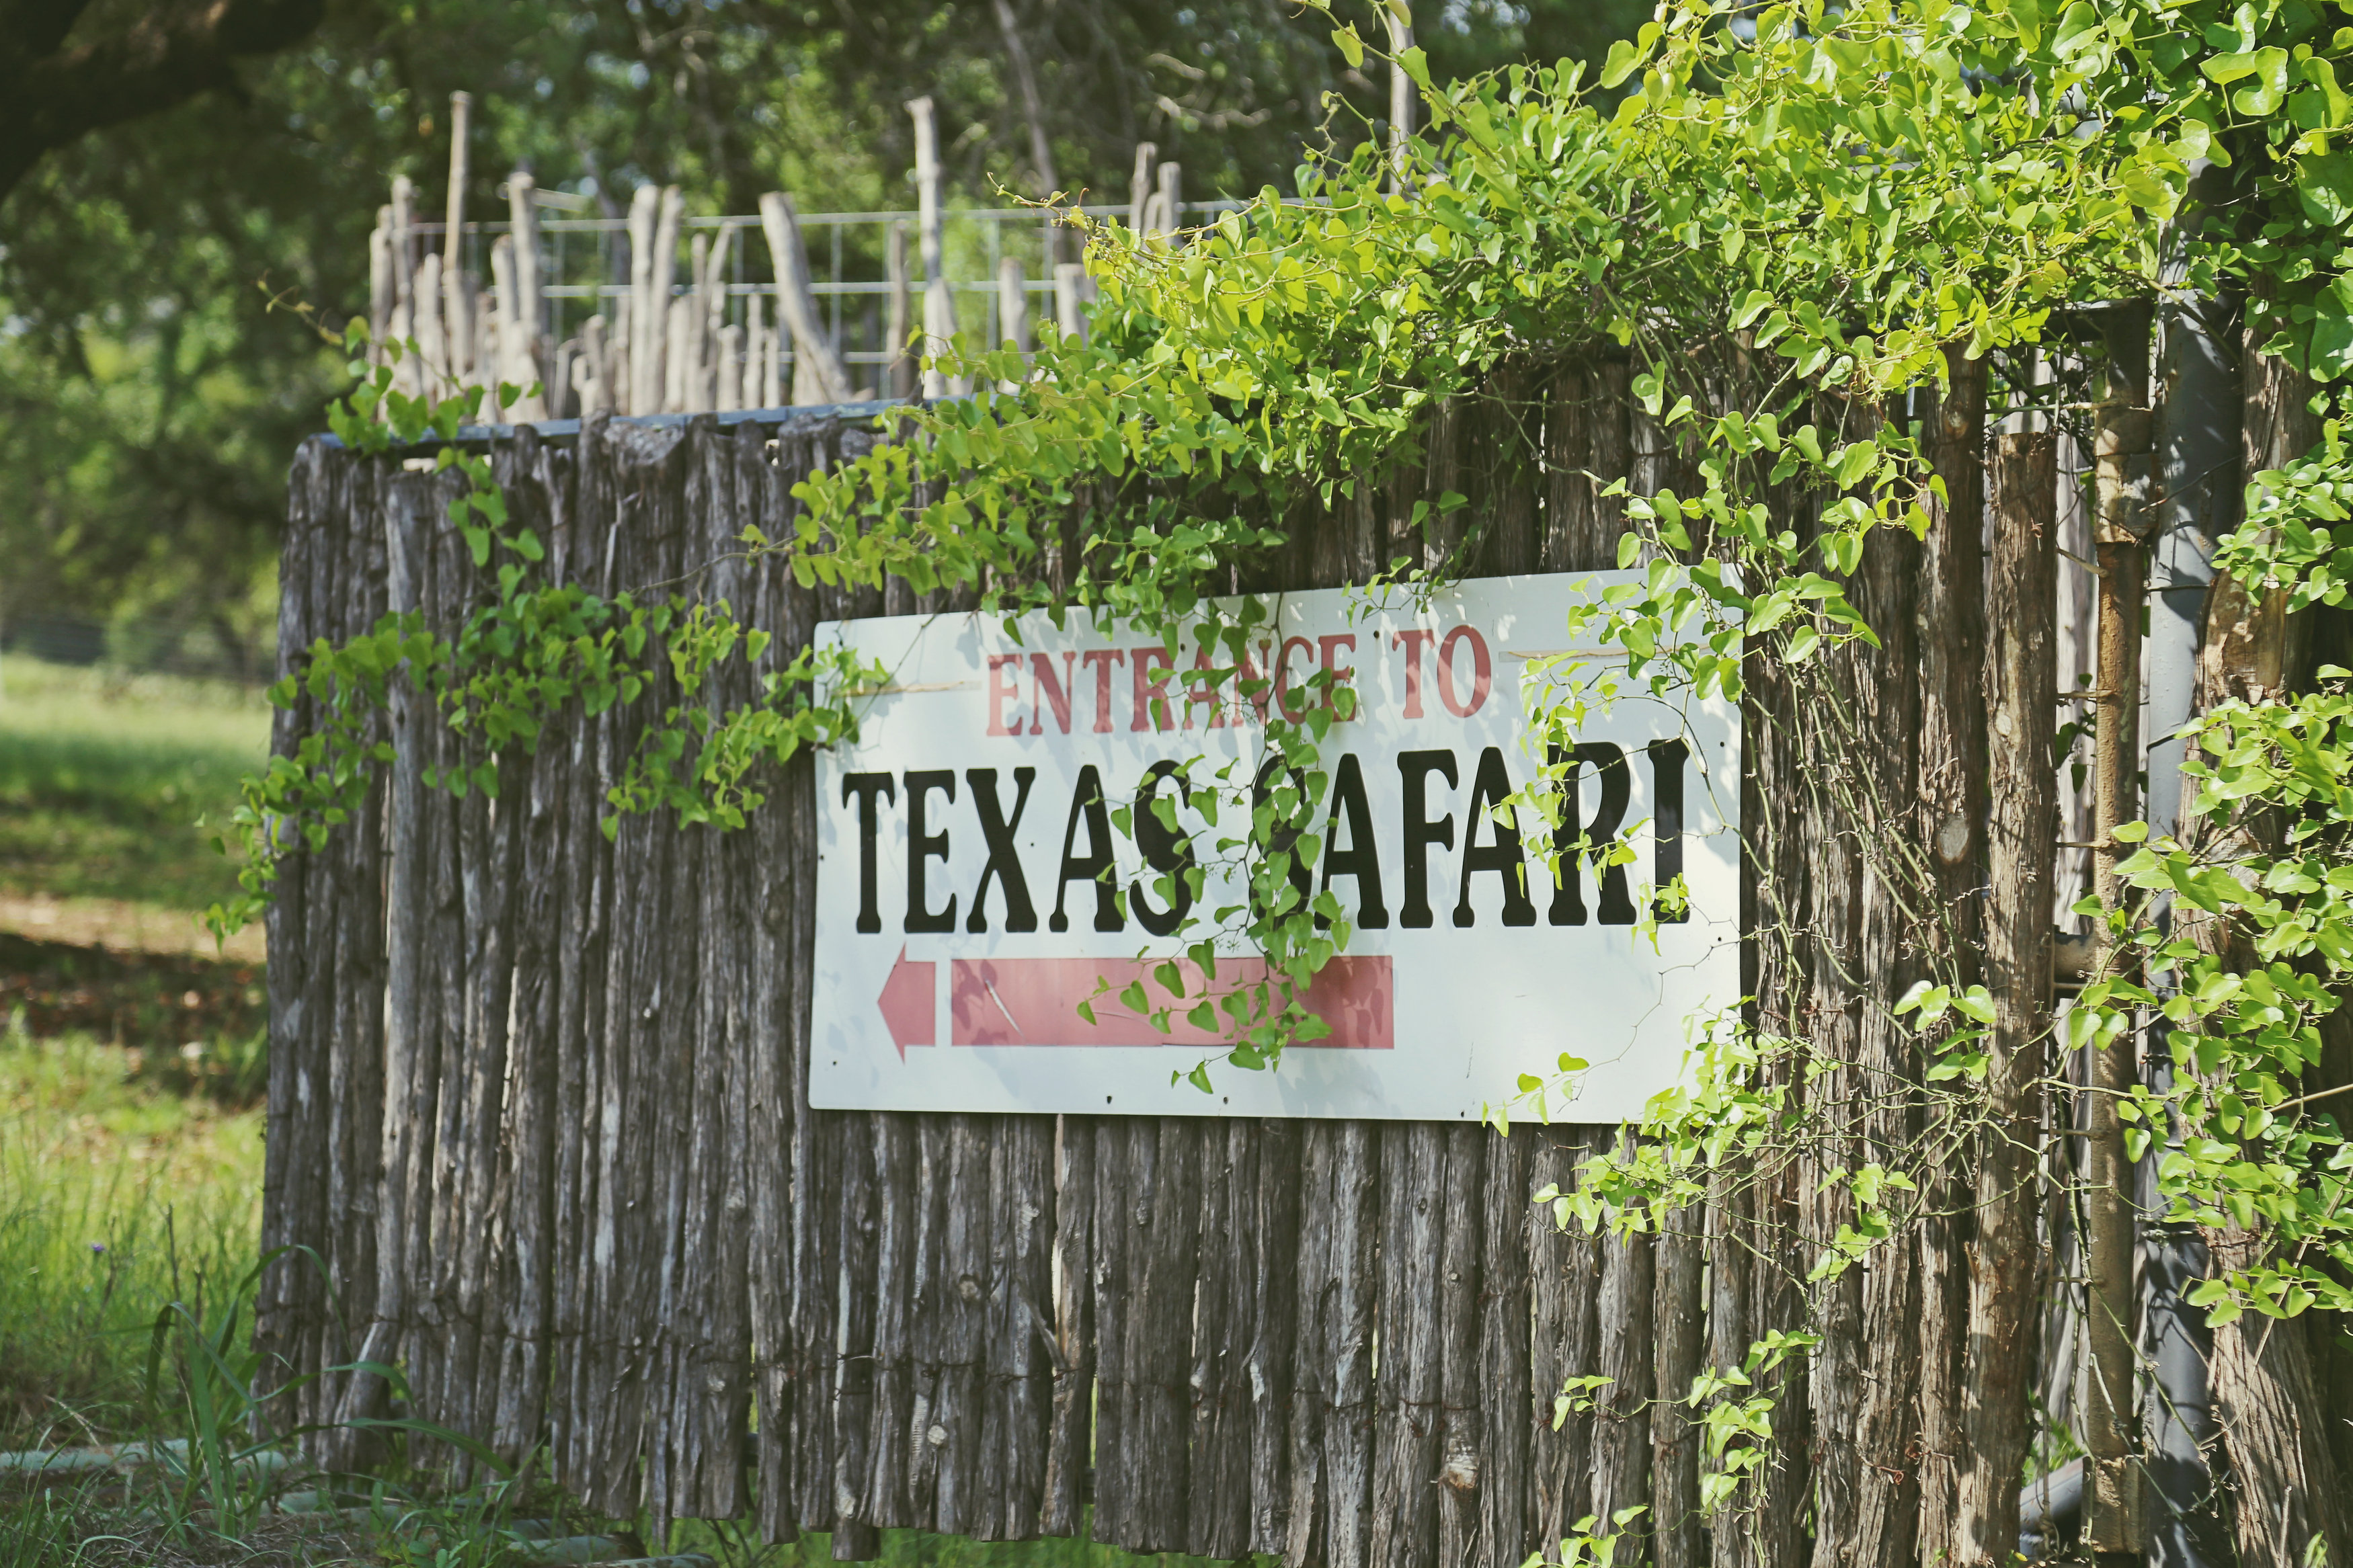 entrance to texas safari